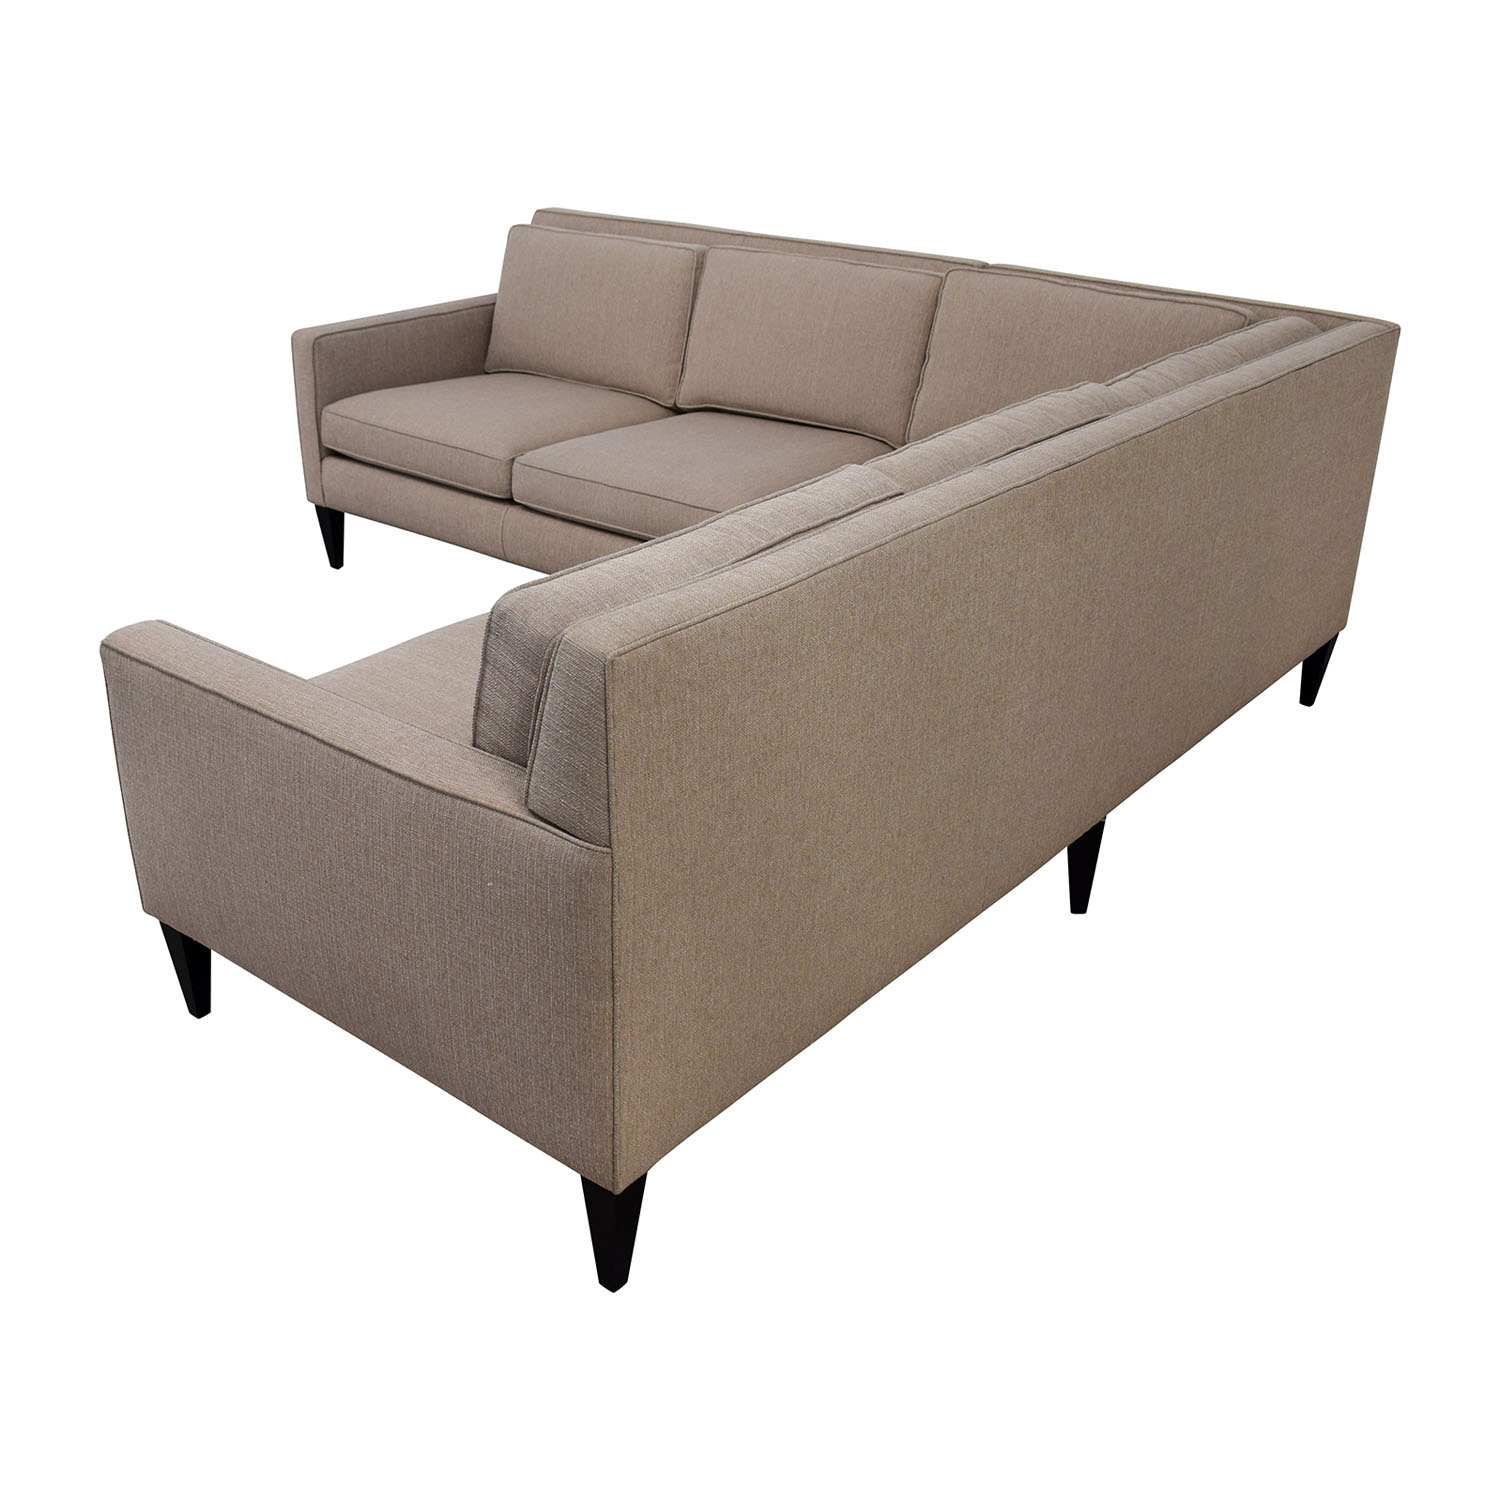 Crate & Barrel Rochelle Midcentury Modern Sectional / Sectionals